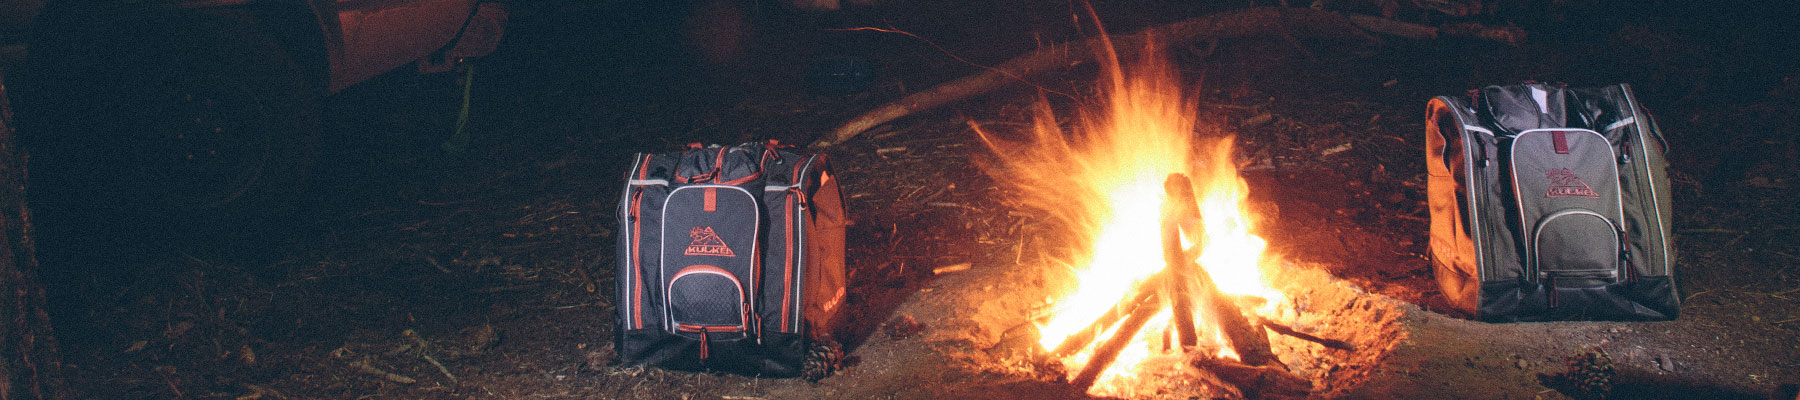 Kulkea Heated Ski Boot Bags - Thermal Trekker by the Fire